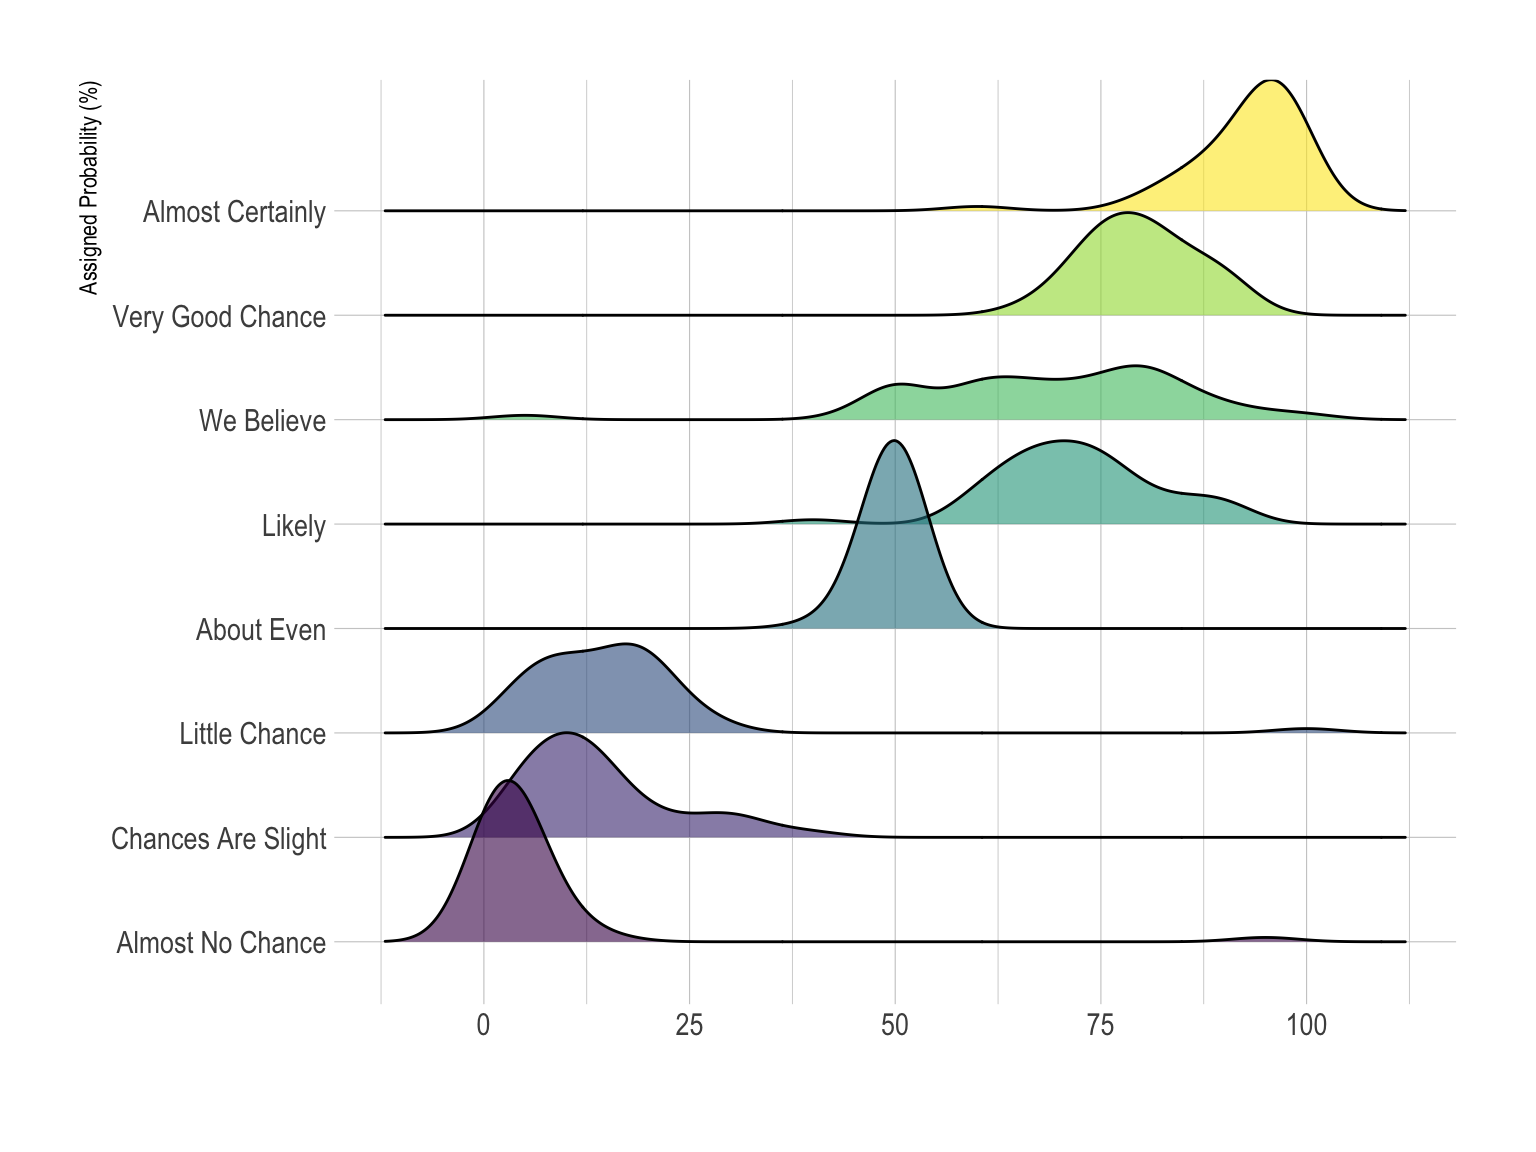 Violin plot – from Data to Viz